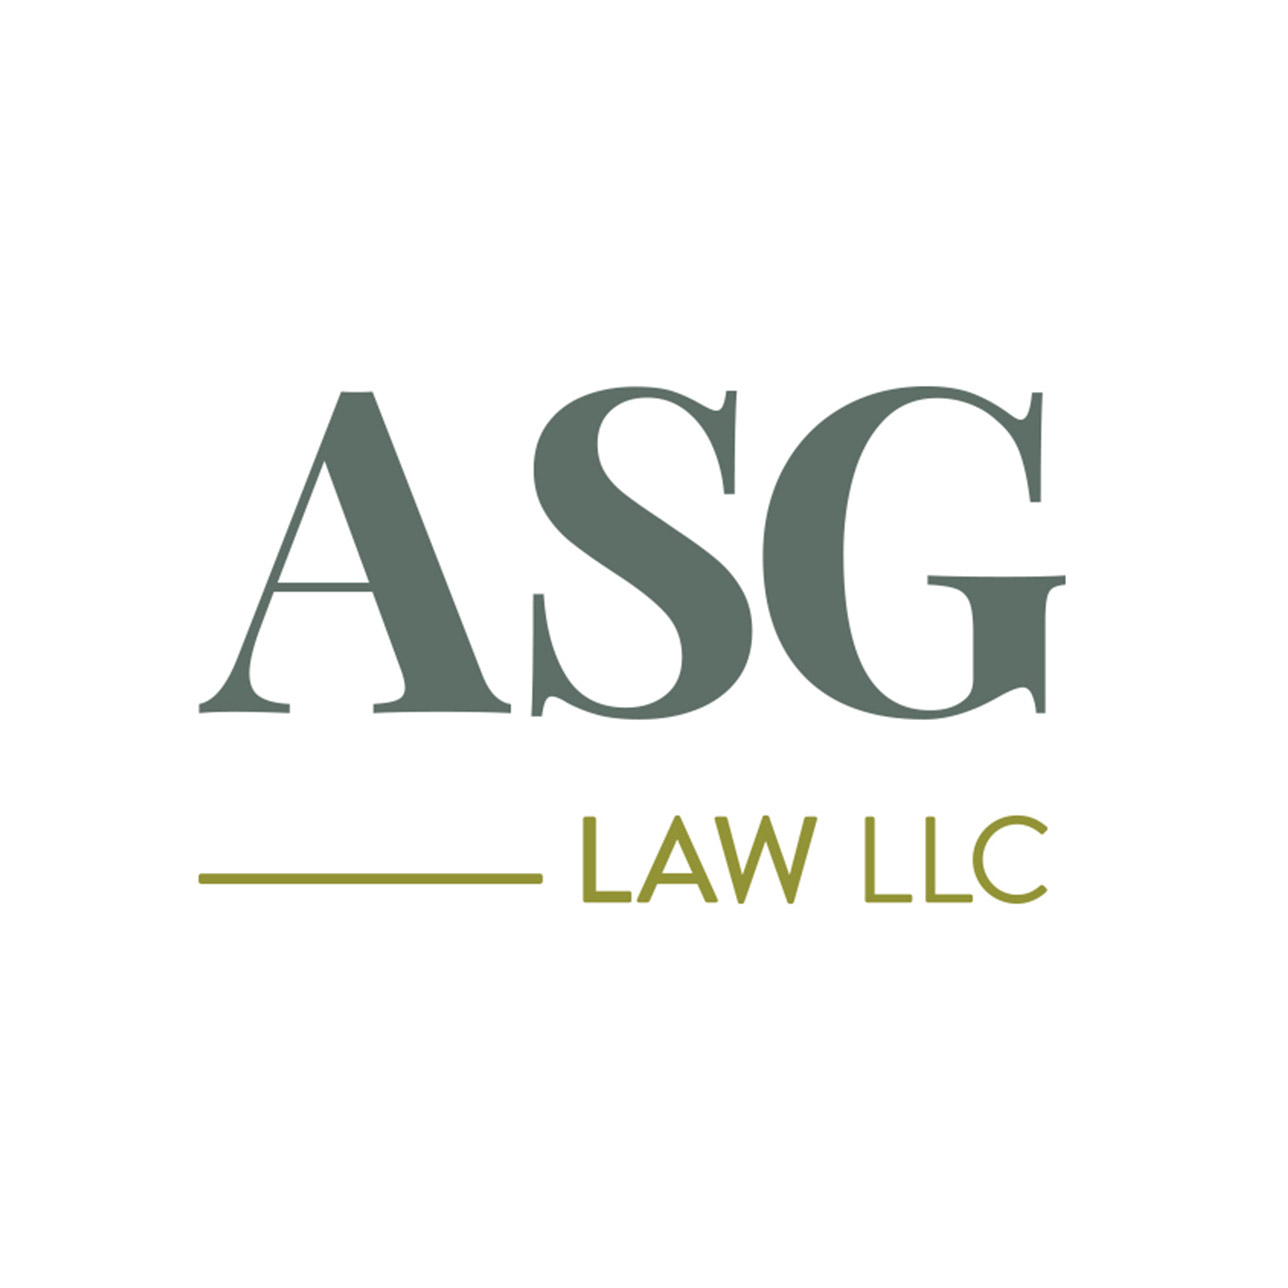 ASG Law firm